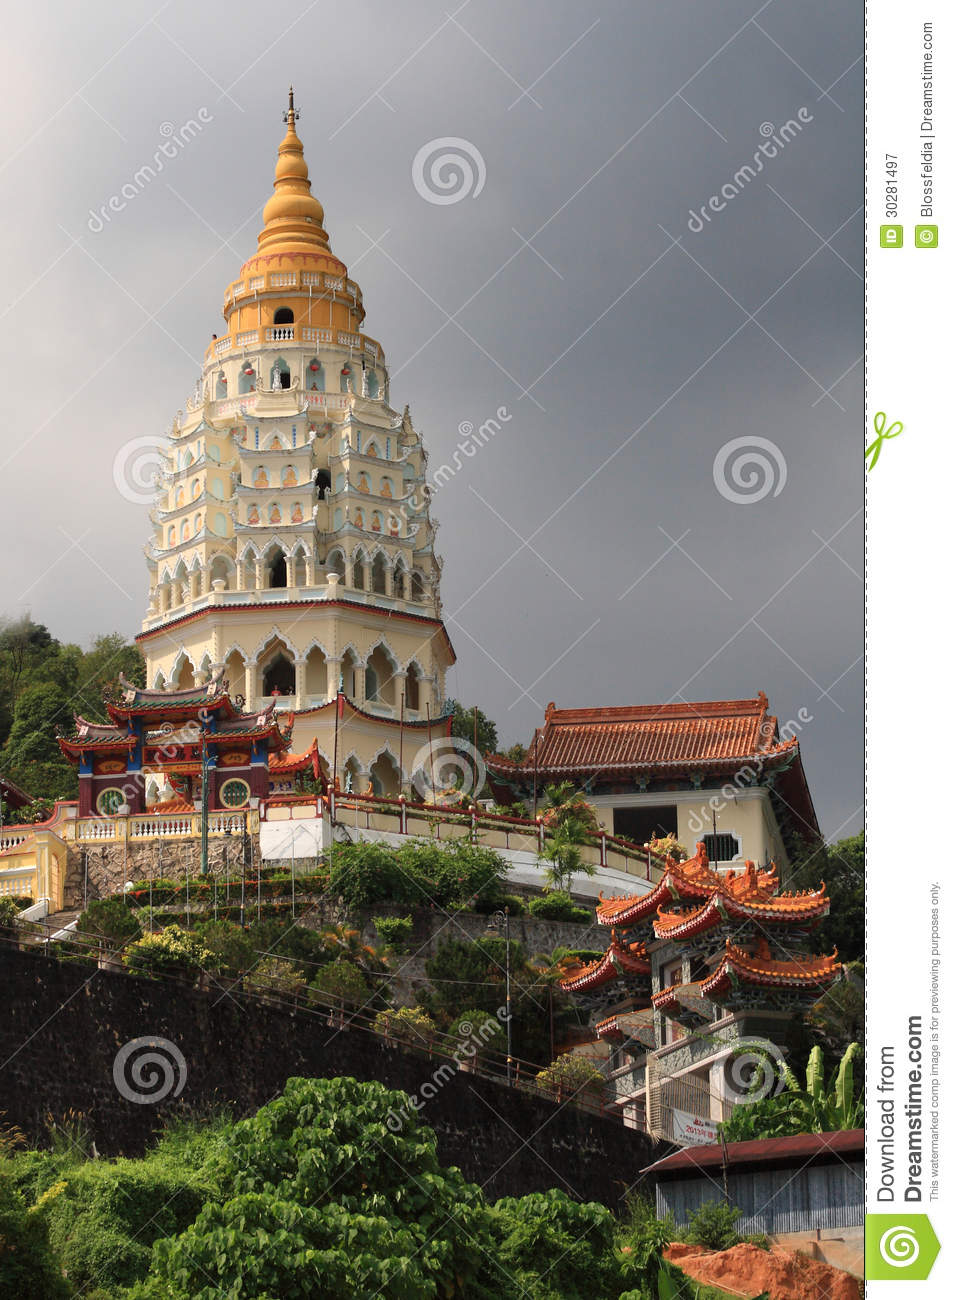 george town buddhist dating site This comprehensive destination website for san josé is maintained by team san jose,  site map contact us: code of ethics open government whistleblower hotline.